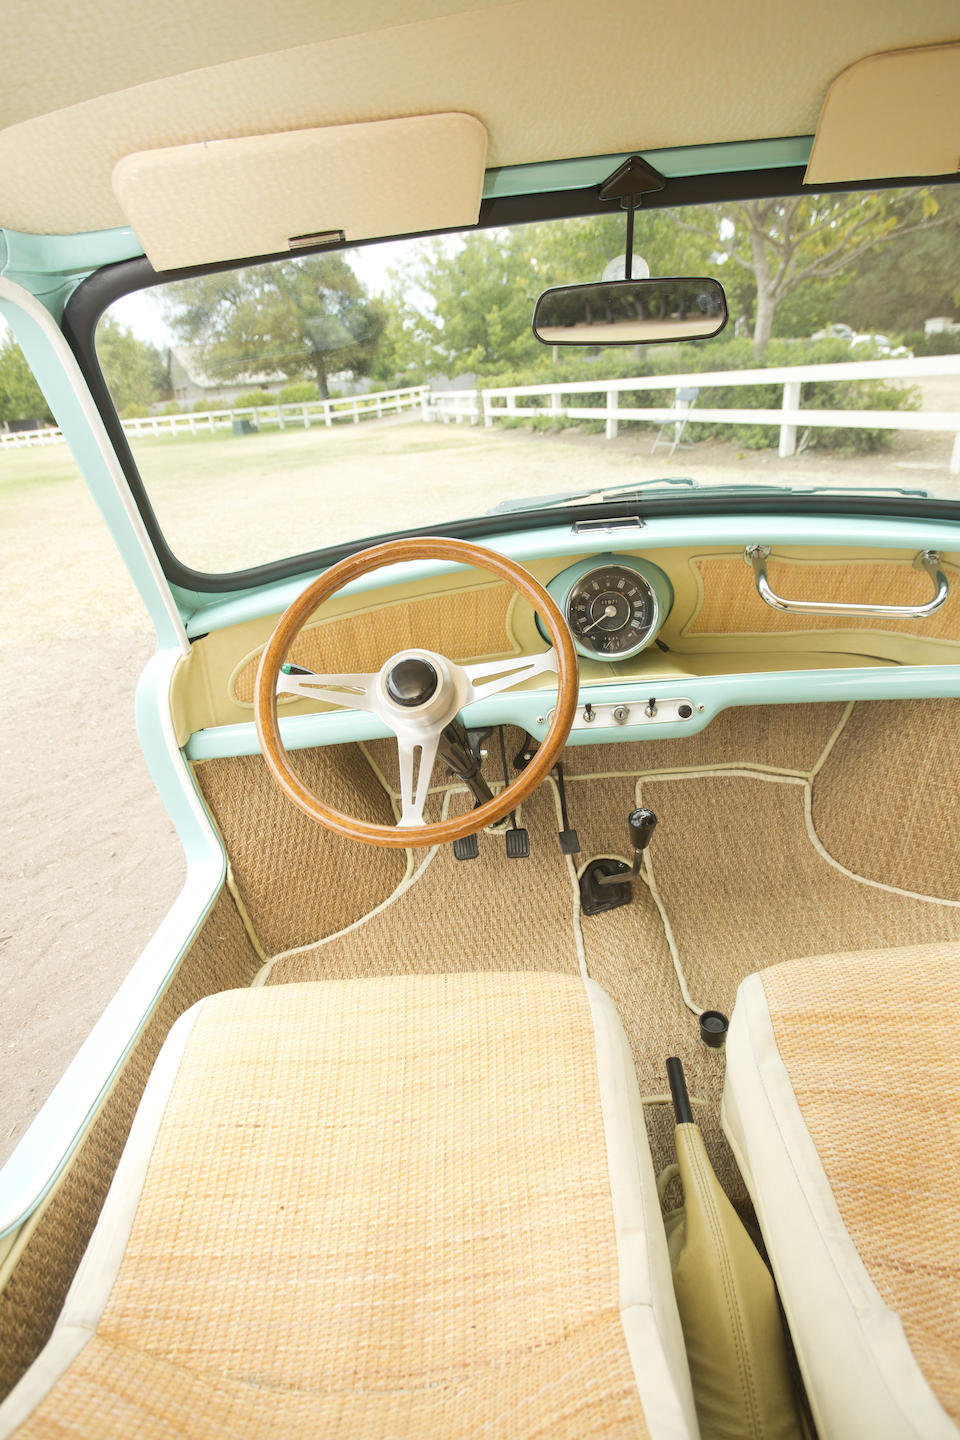 <b>1962 AUSTIN MINI BEACH CAR  </b><br />Chassis no. A-AY1L-197664 <br />Engine no. 8AM-U-H264329